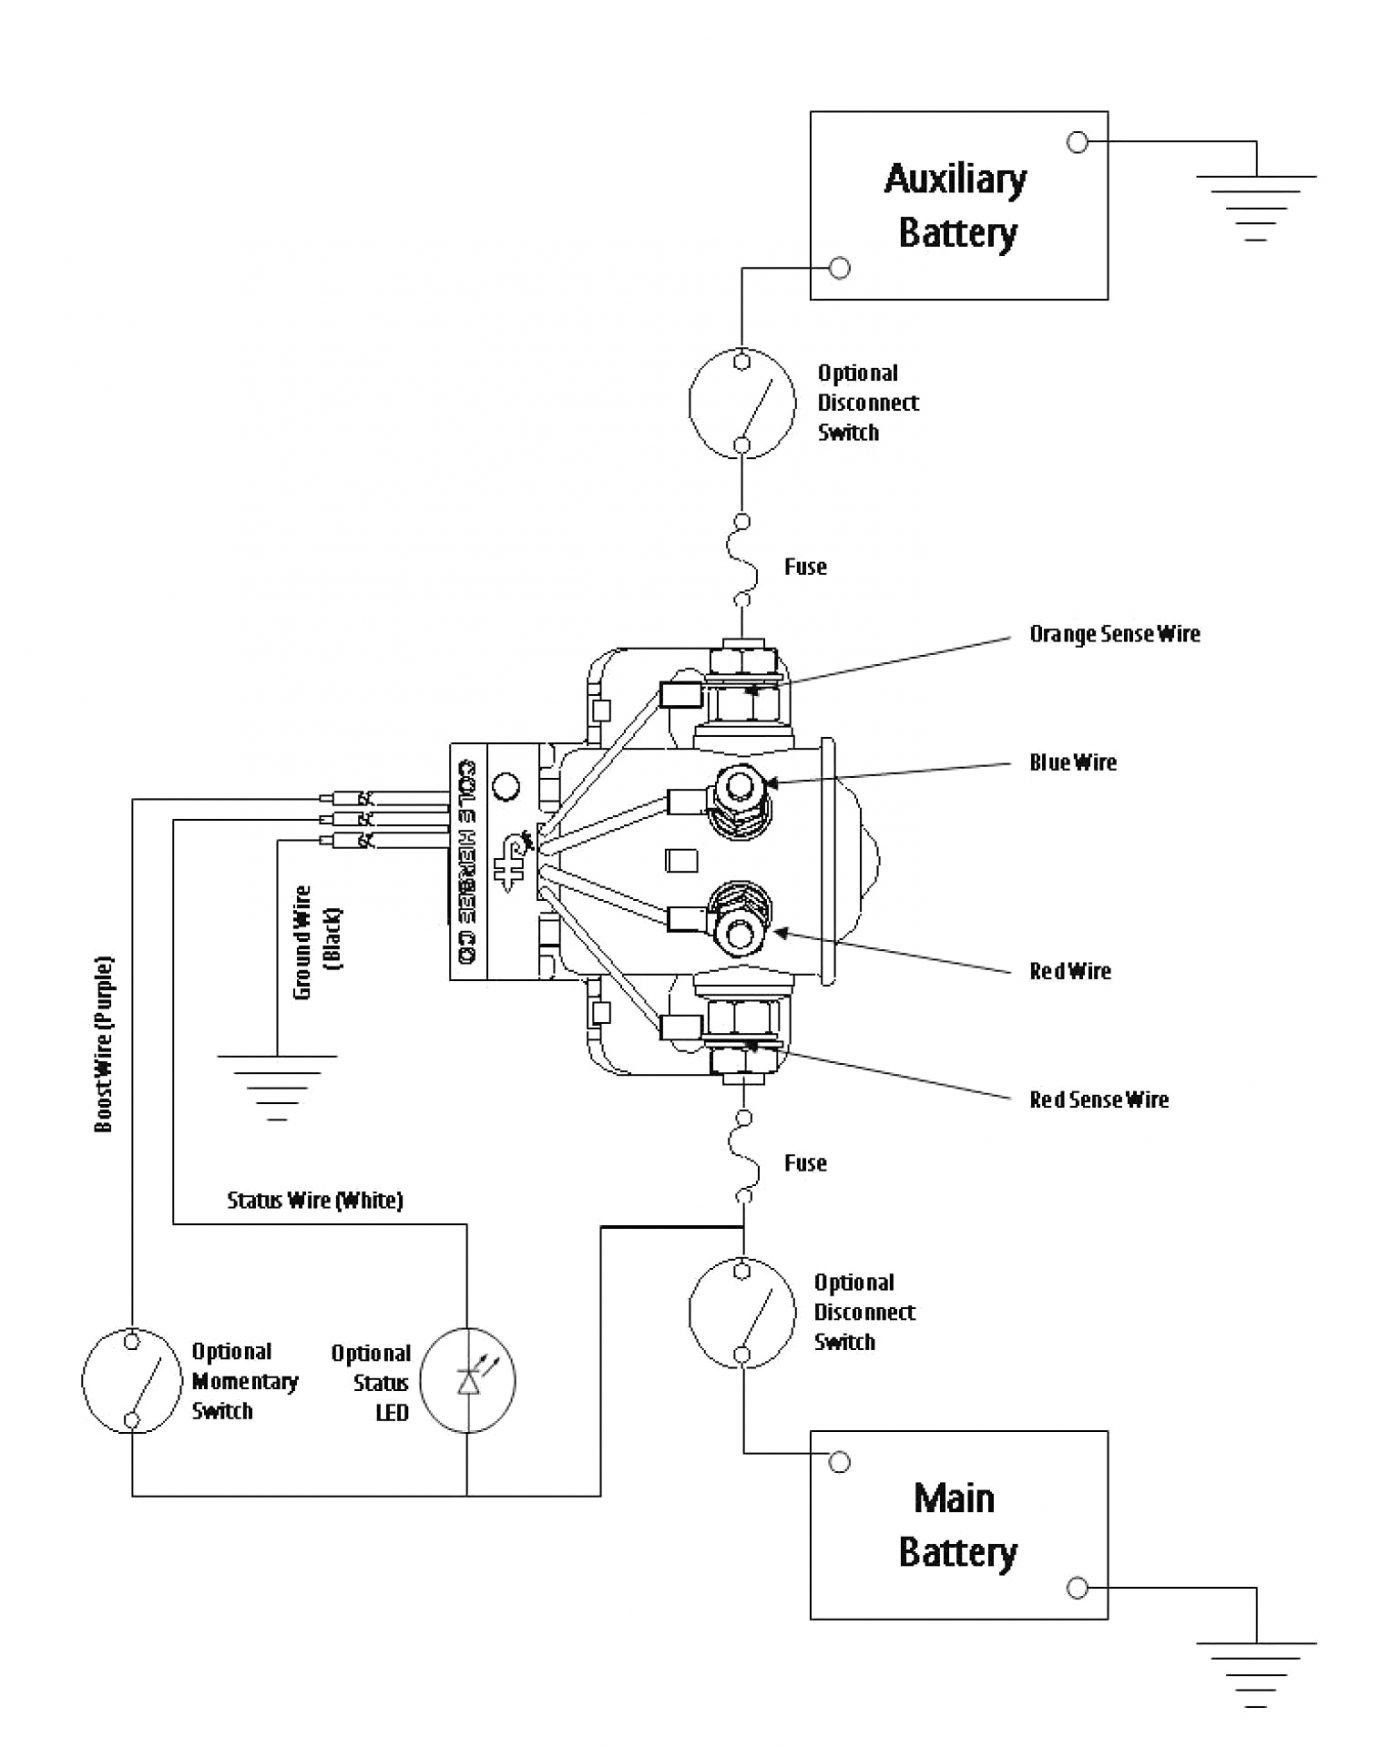 Dual Battery Switch Wiring Diagram In 2020 Electrical Wiring Diagram Diagram Boat Wiring